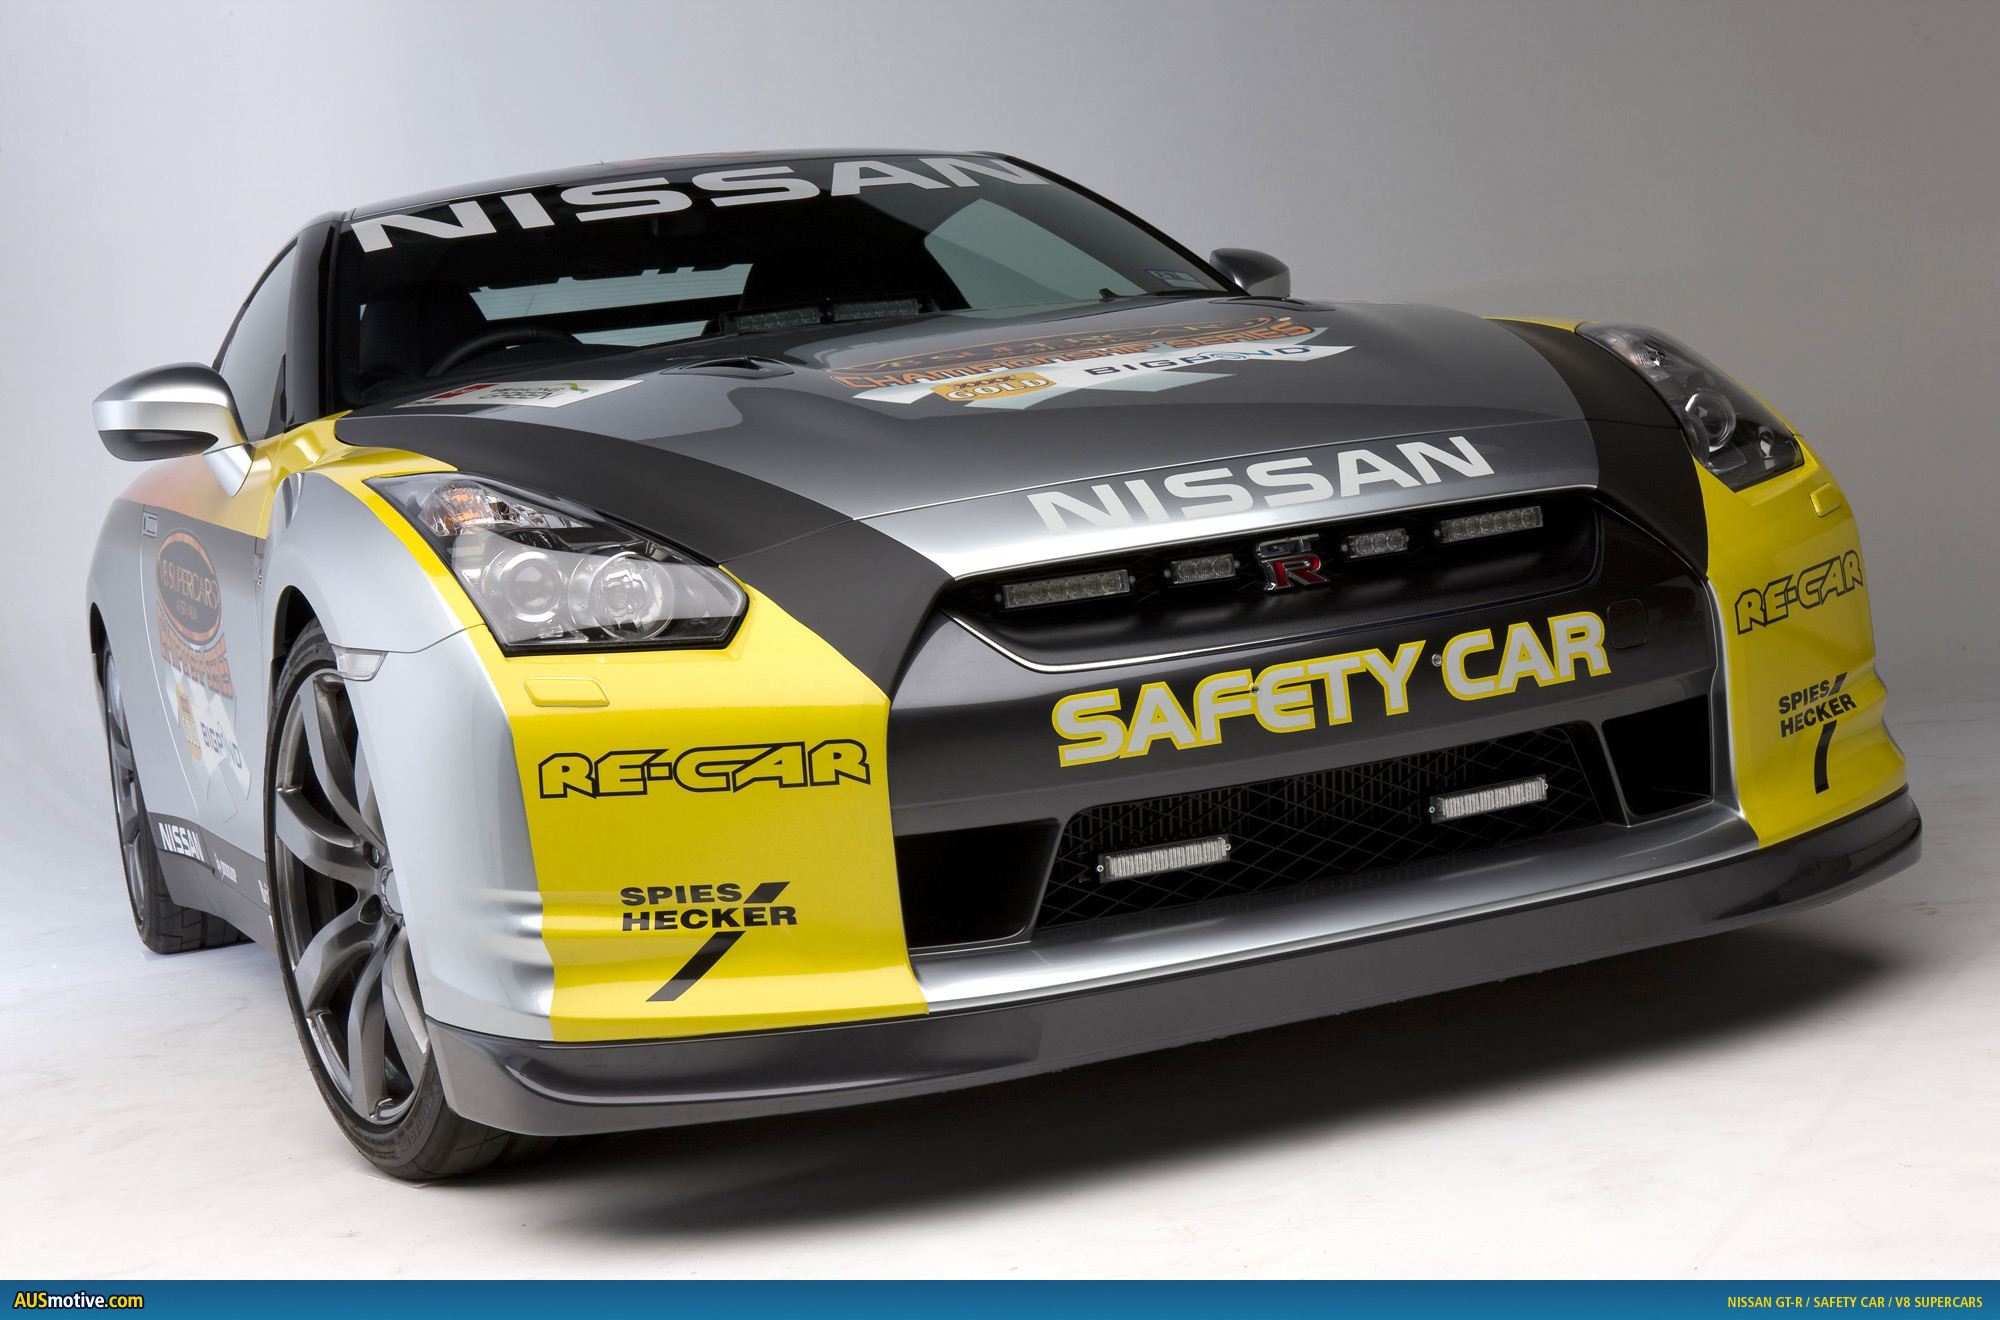 Safety the Keynote as Nissan